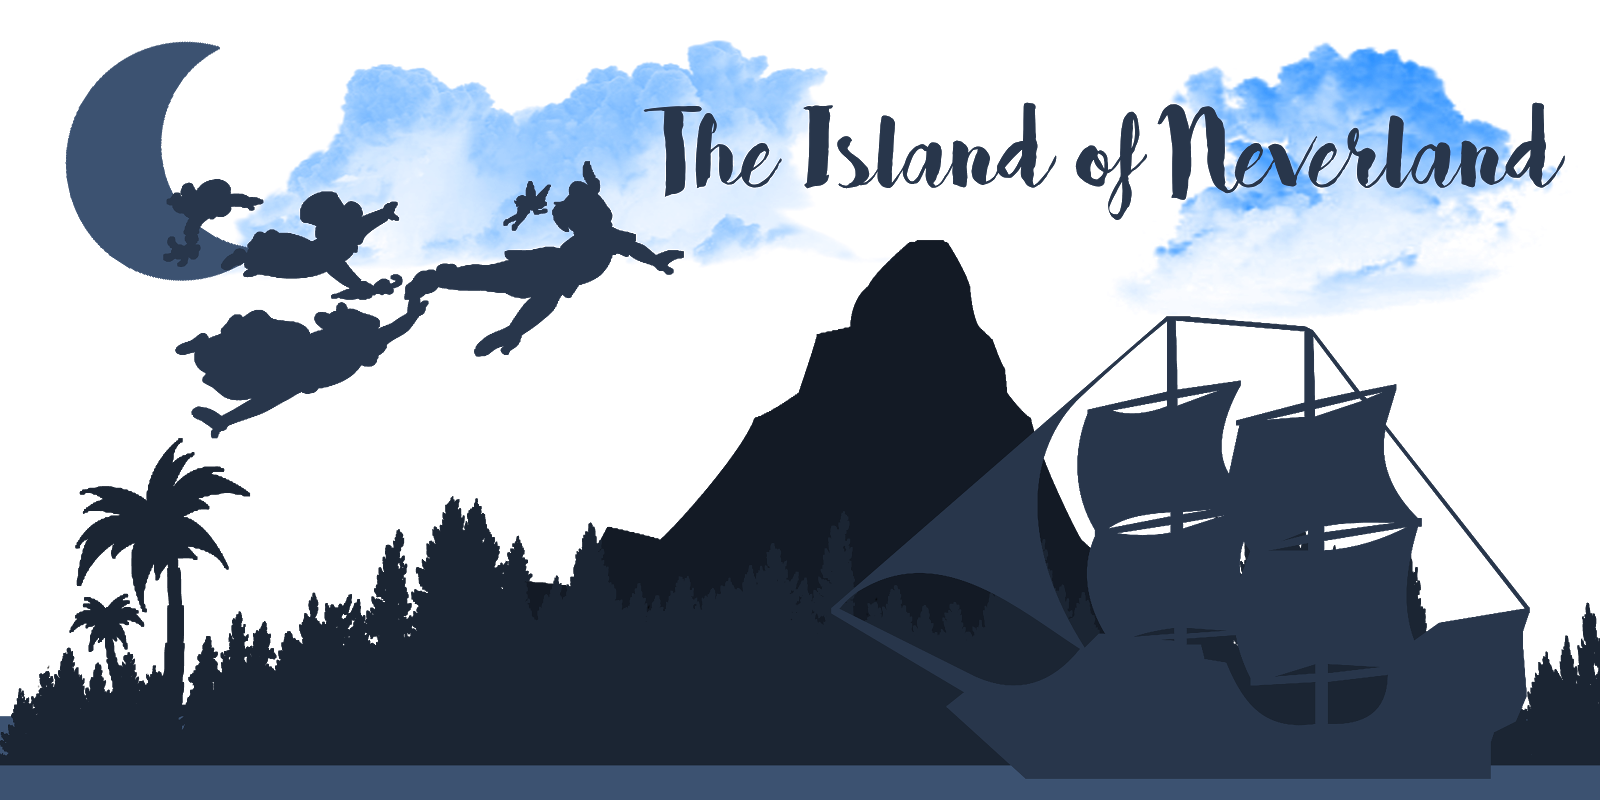 The island of neverland